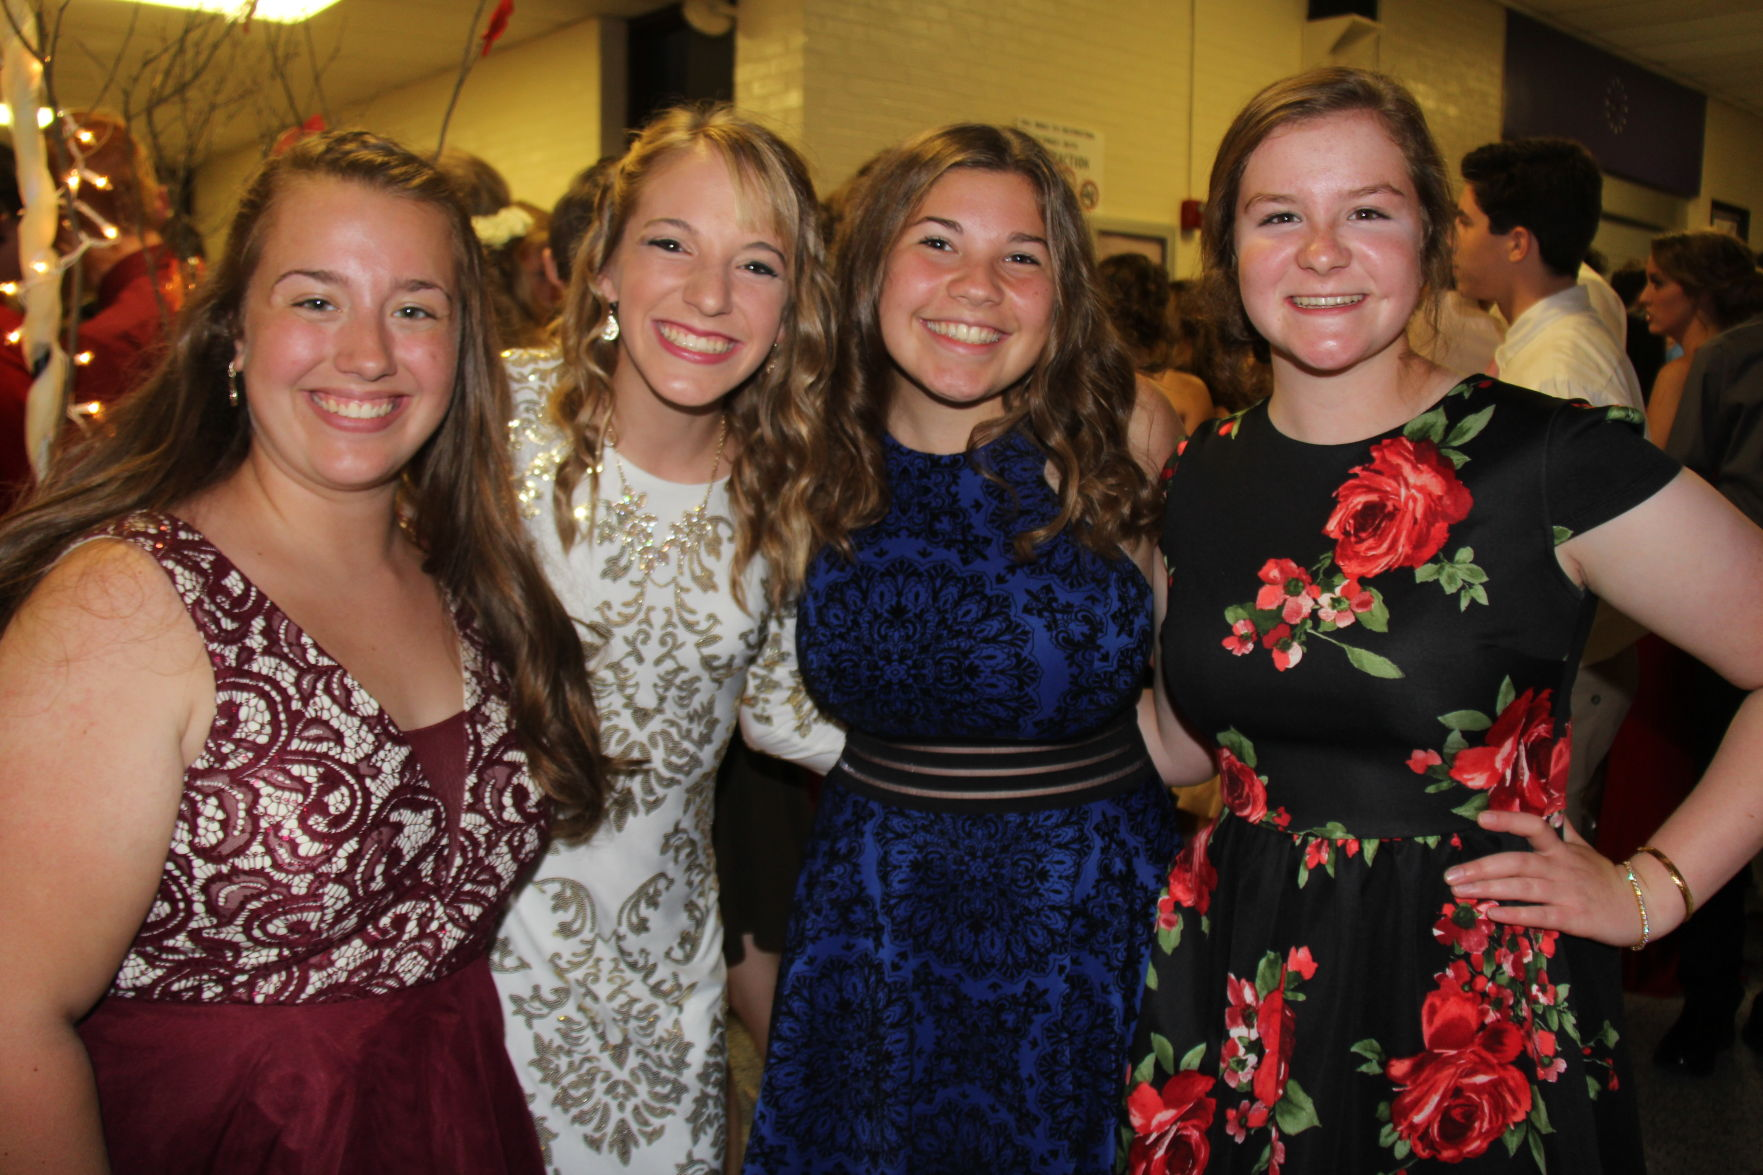 GALLERY: Lexington Homecoming 2017